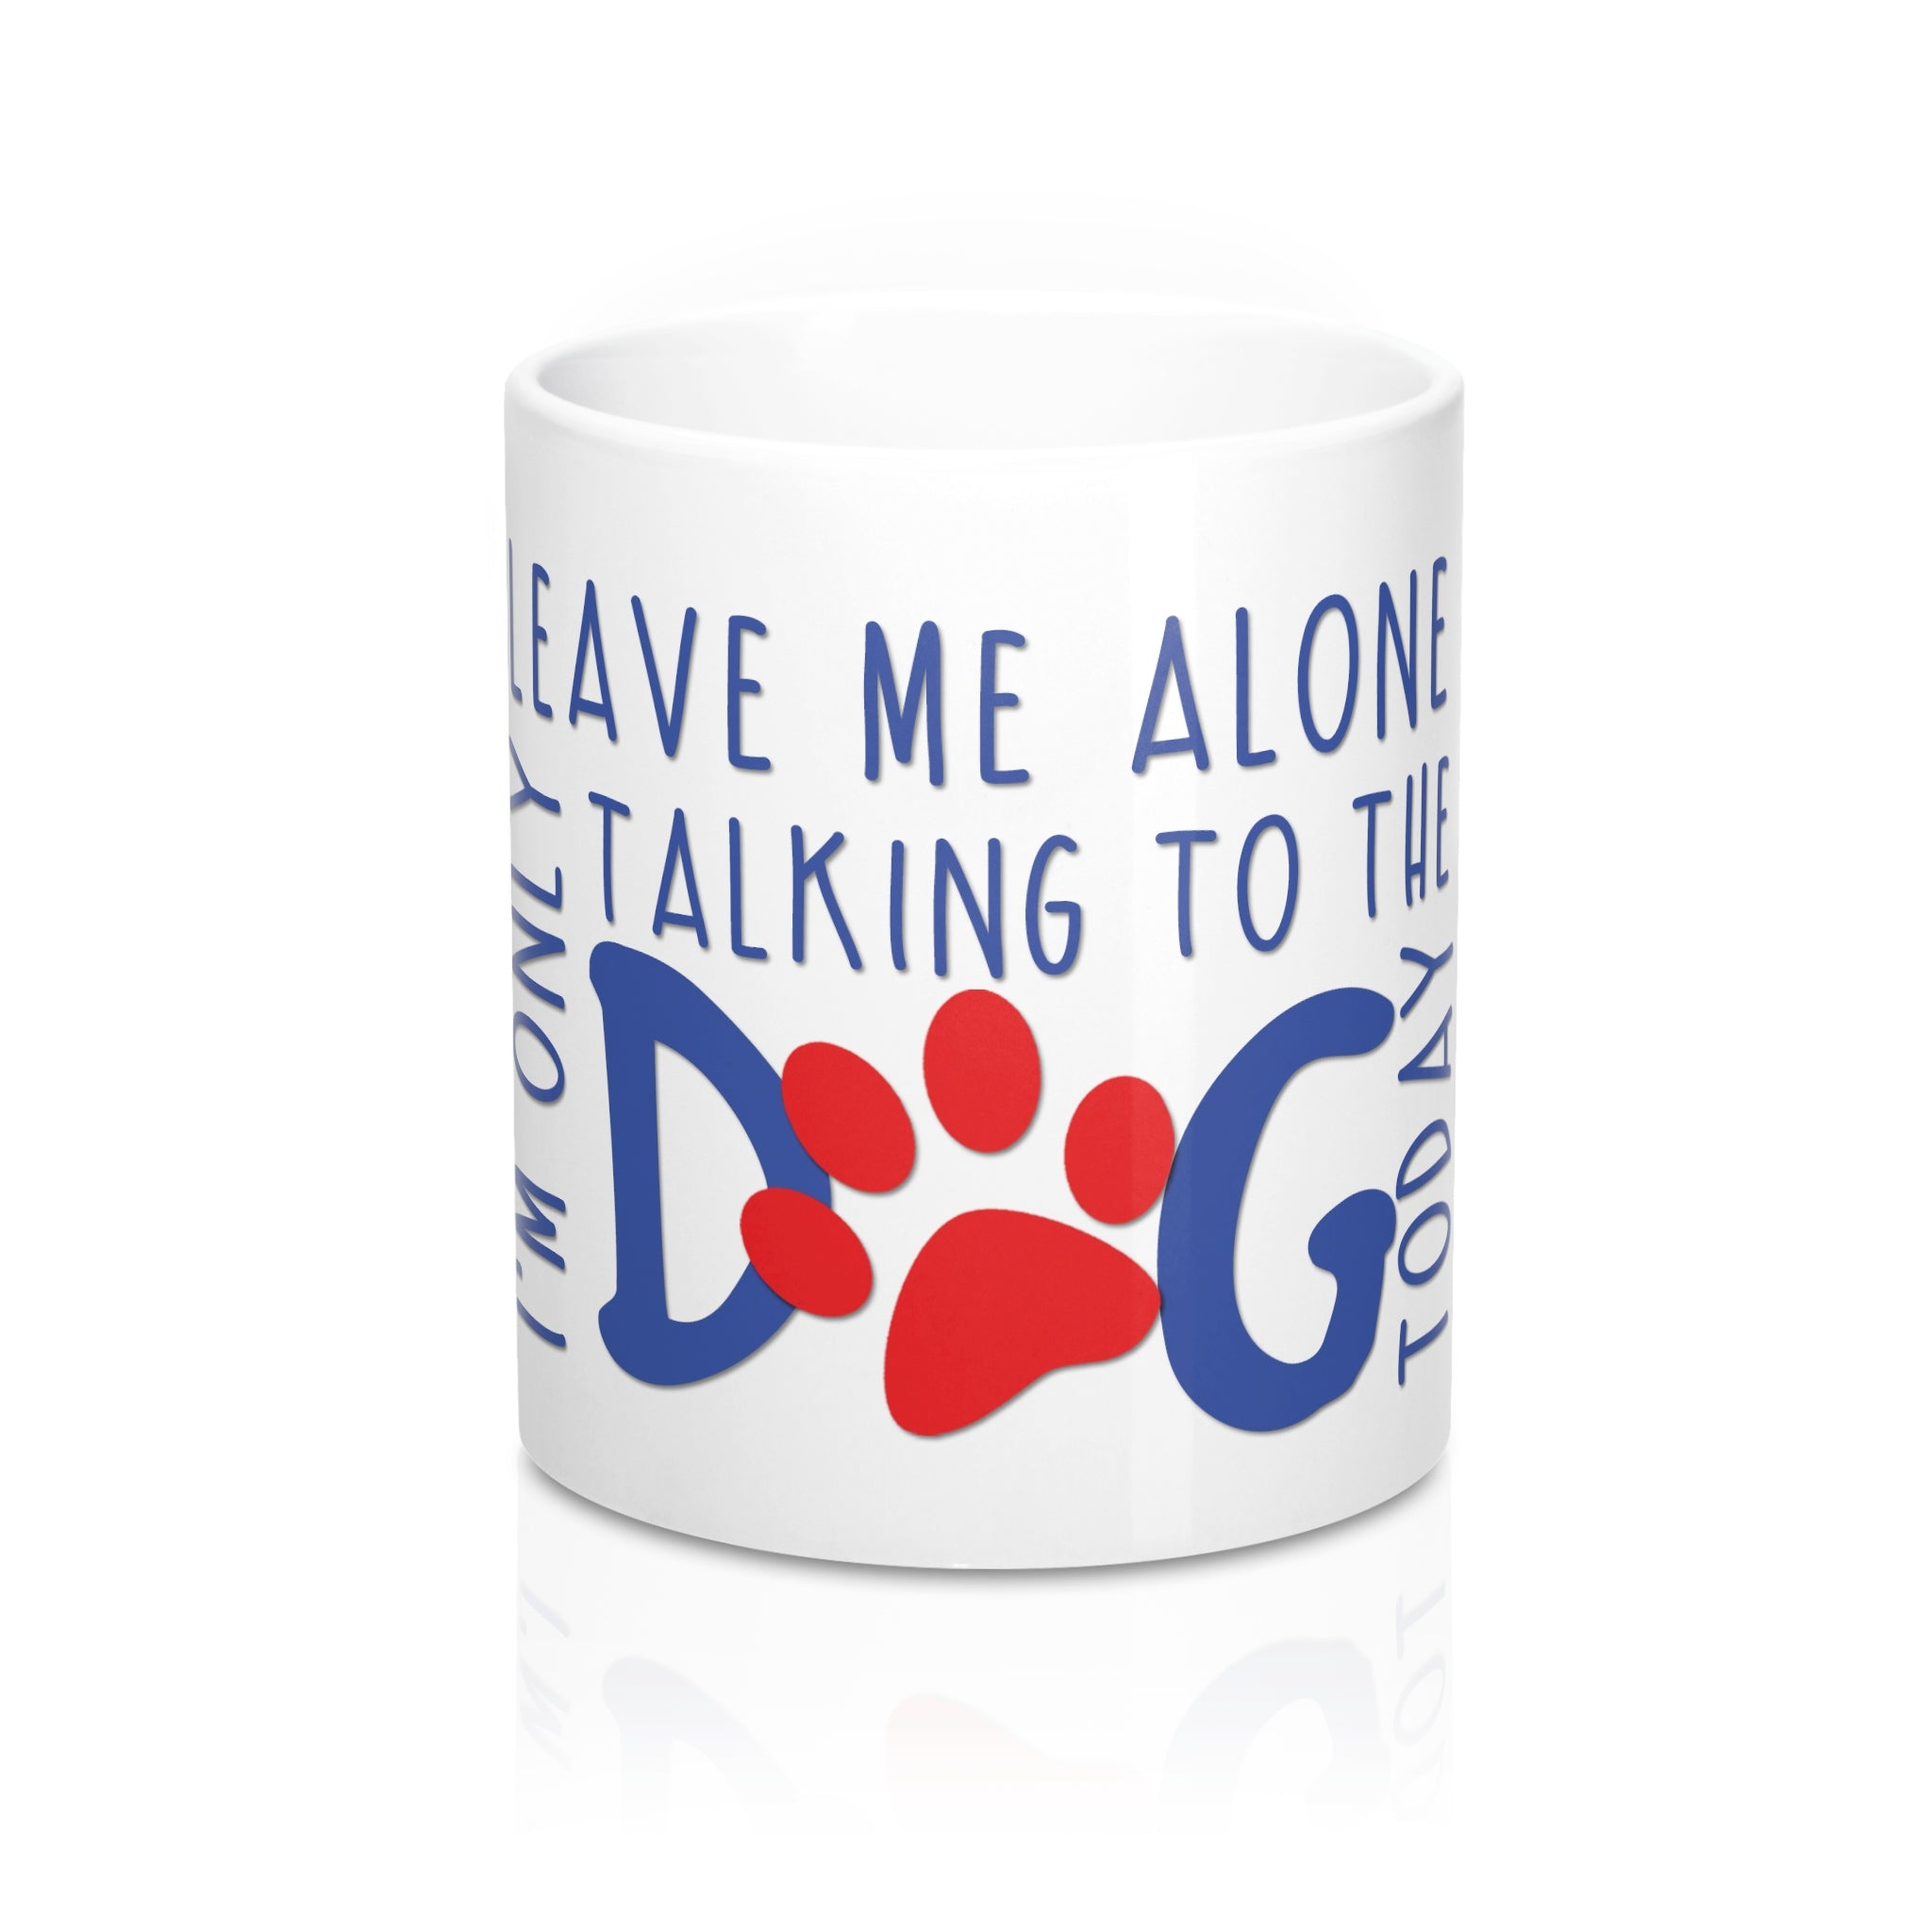 Leave me alone i'm only talking to the dog today Mug